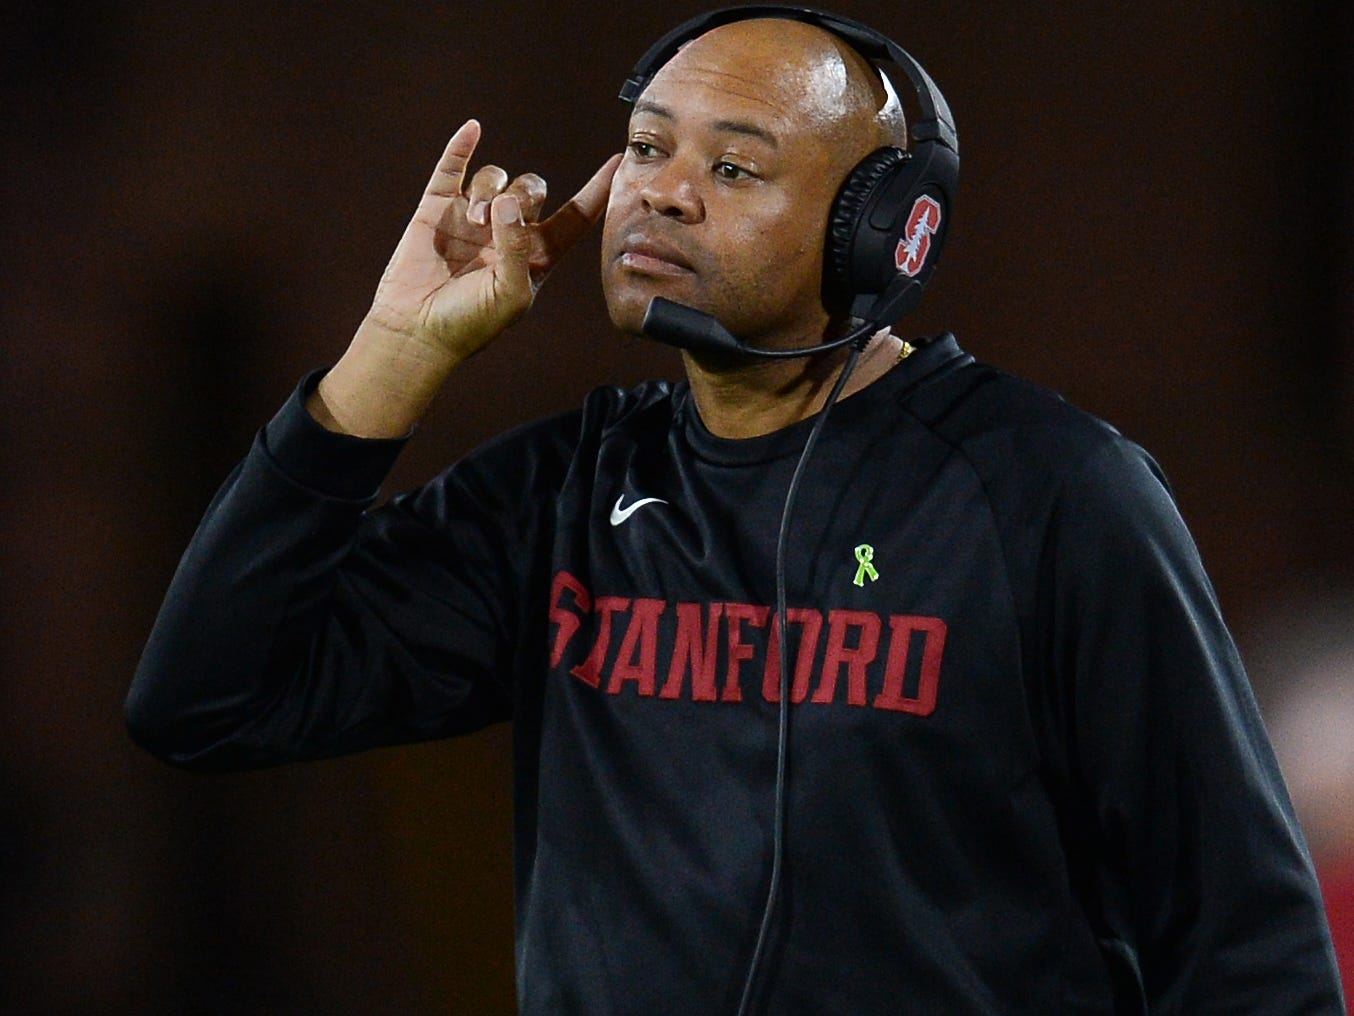 Oct 18, 2018; Tempe, AZ, USA; Stanford Cardinal head coach David Shaw looks on against the Arizona State Sun Devils during the second half at Sun Devil Stadium.